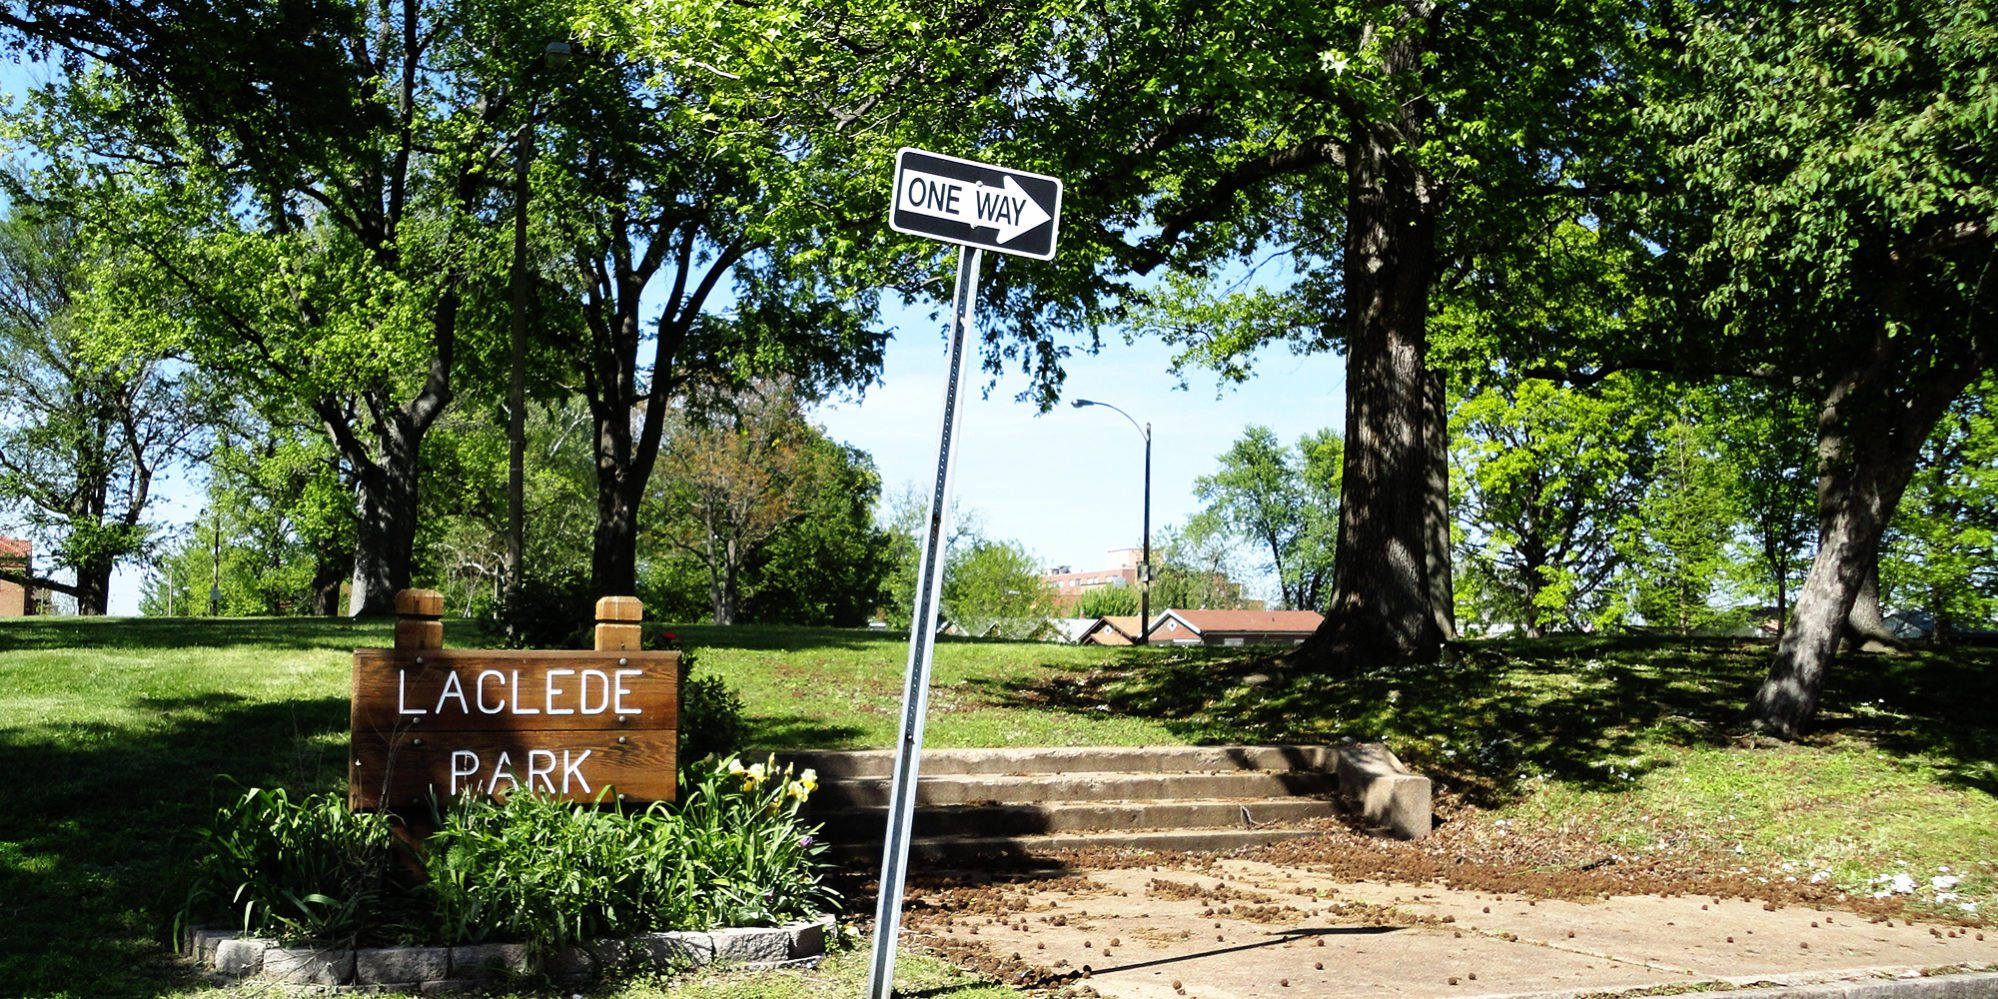 Laclede Park in the Dutchtown neighborhood of St. Louis, MO. Photo by Paul Sableman.